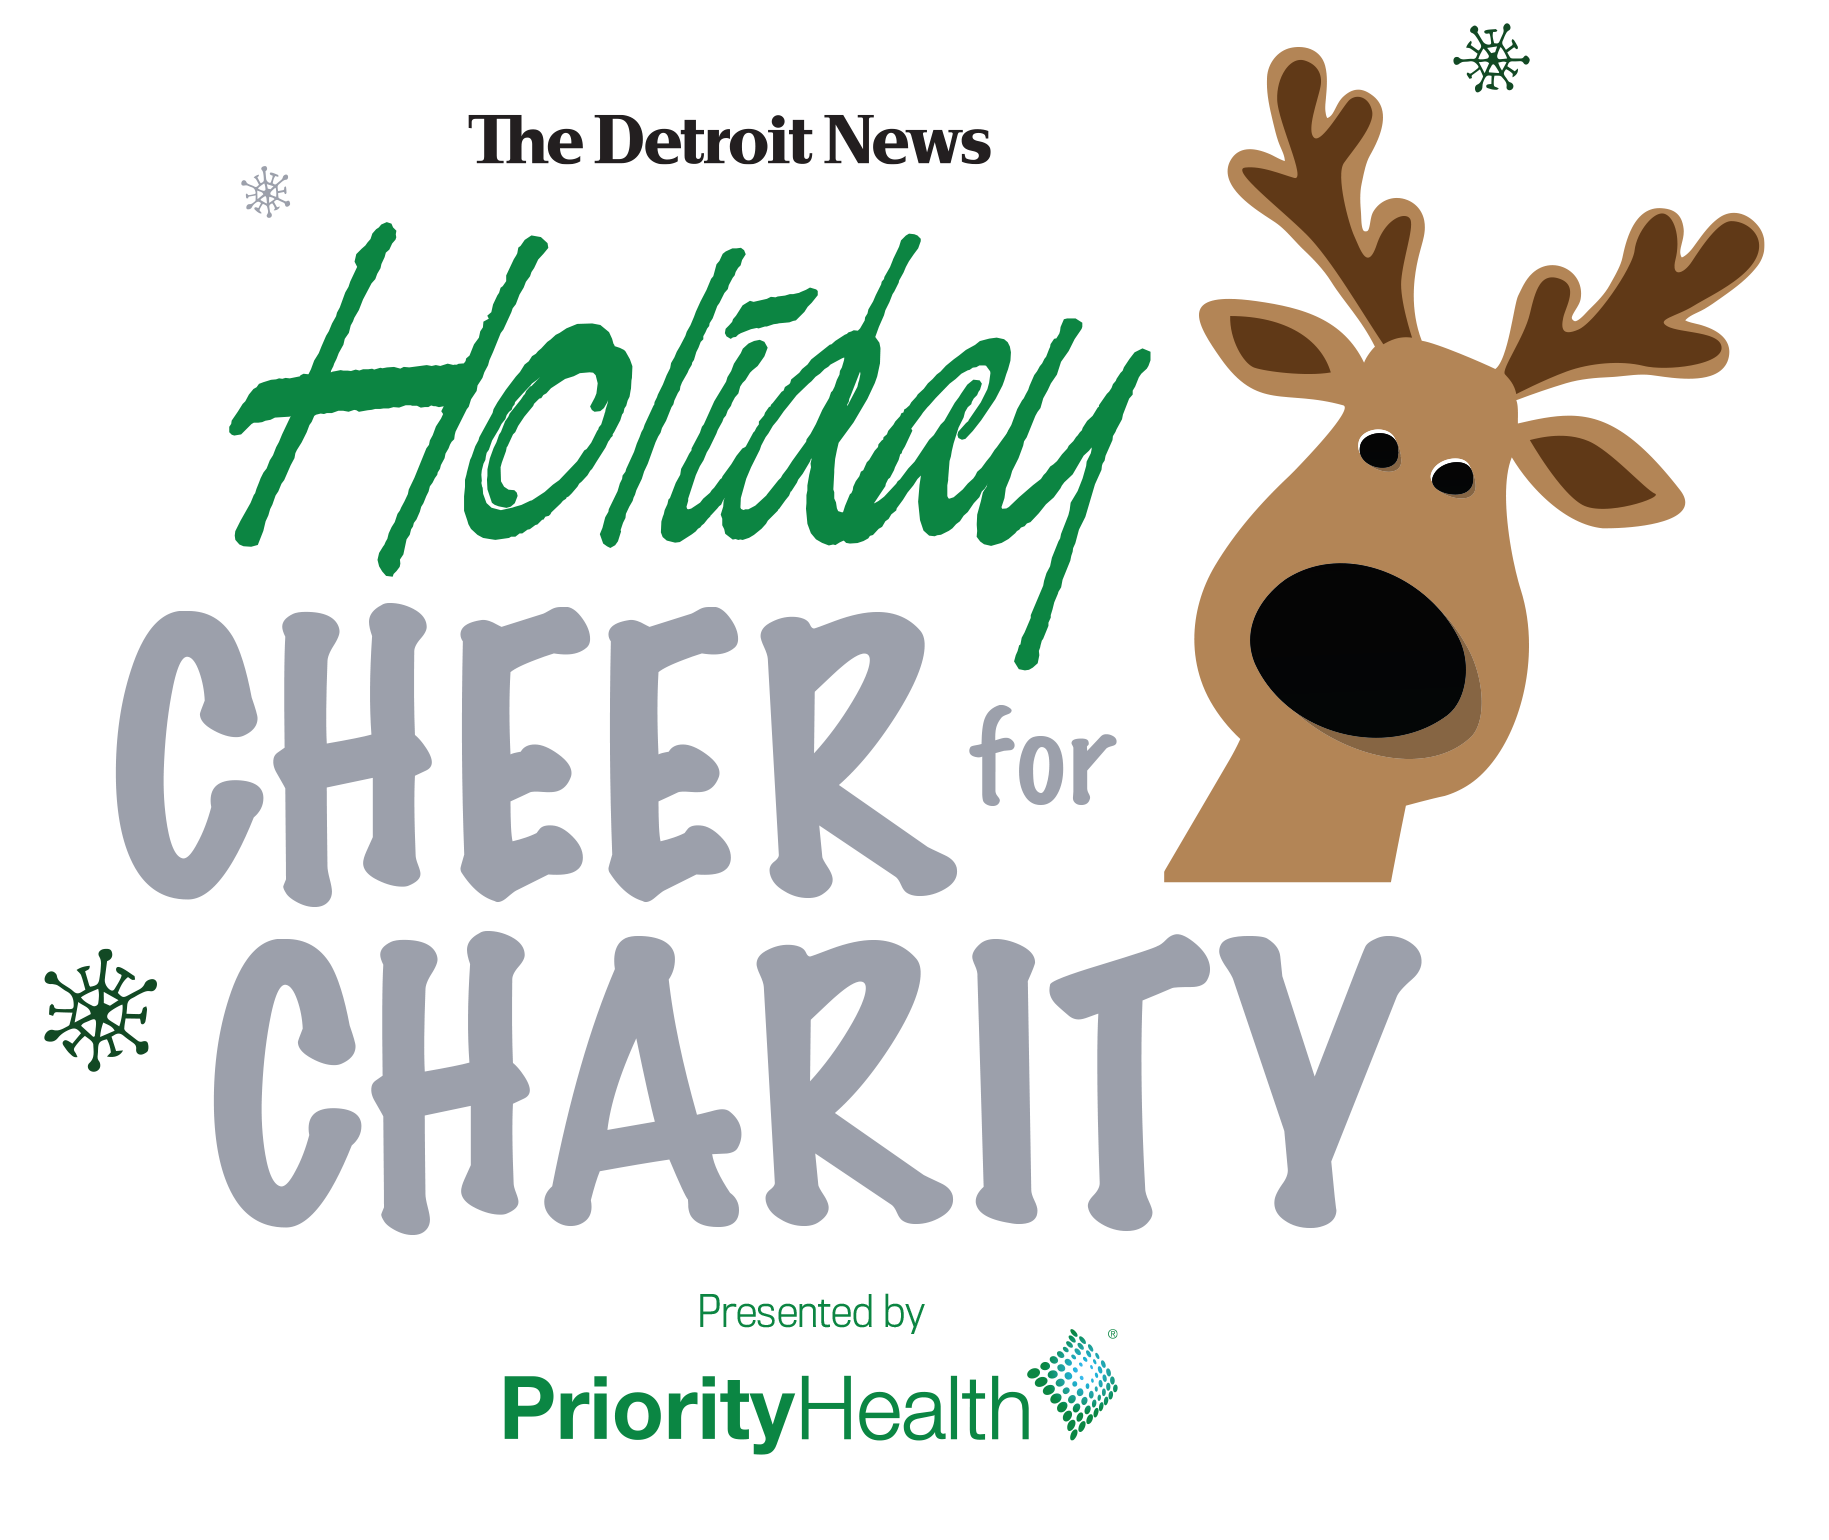 The Detroit News Holiday Cheers for Charity Photo